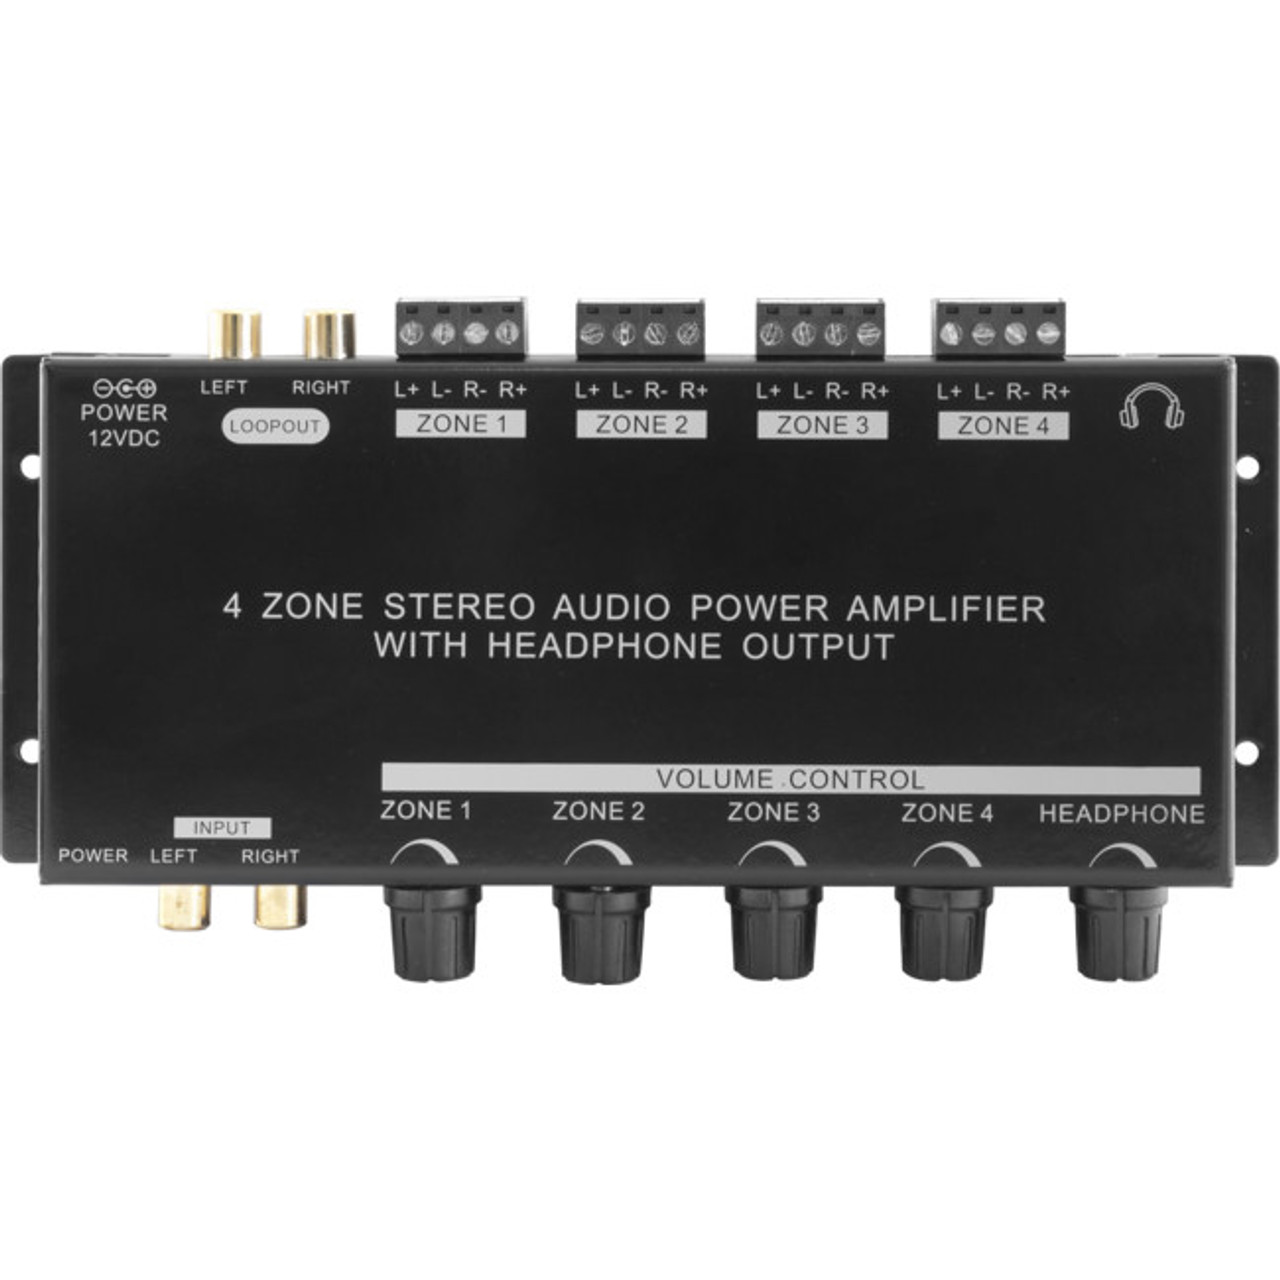 Pro2 PRO1300 Four Zone Stereo Power Amplifier - RRP $275.00